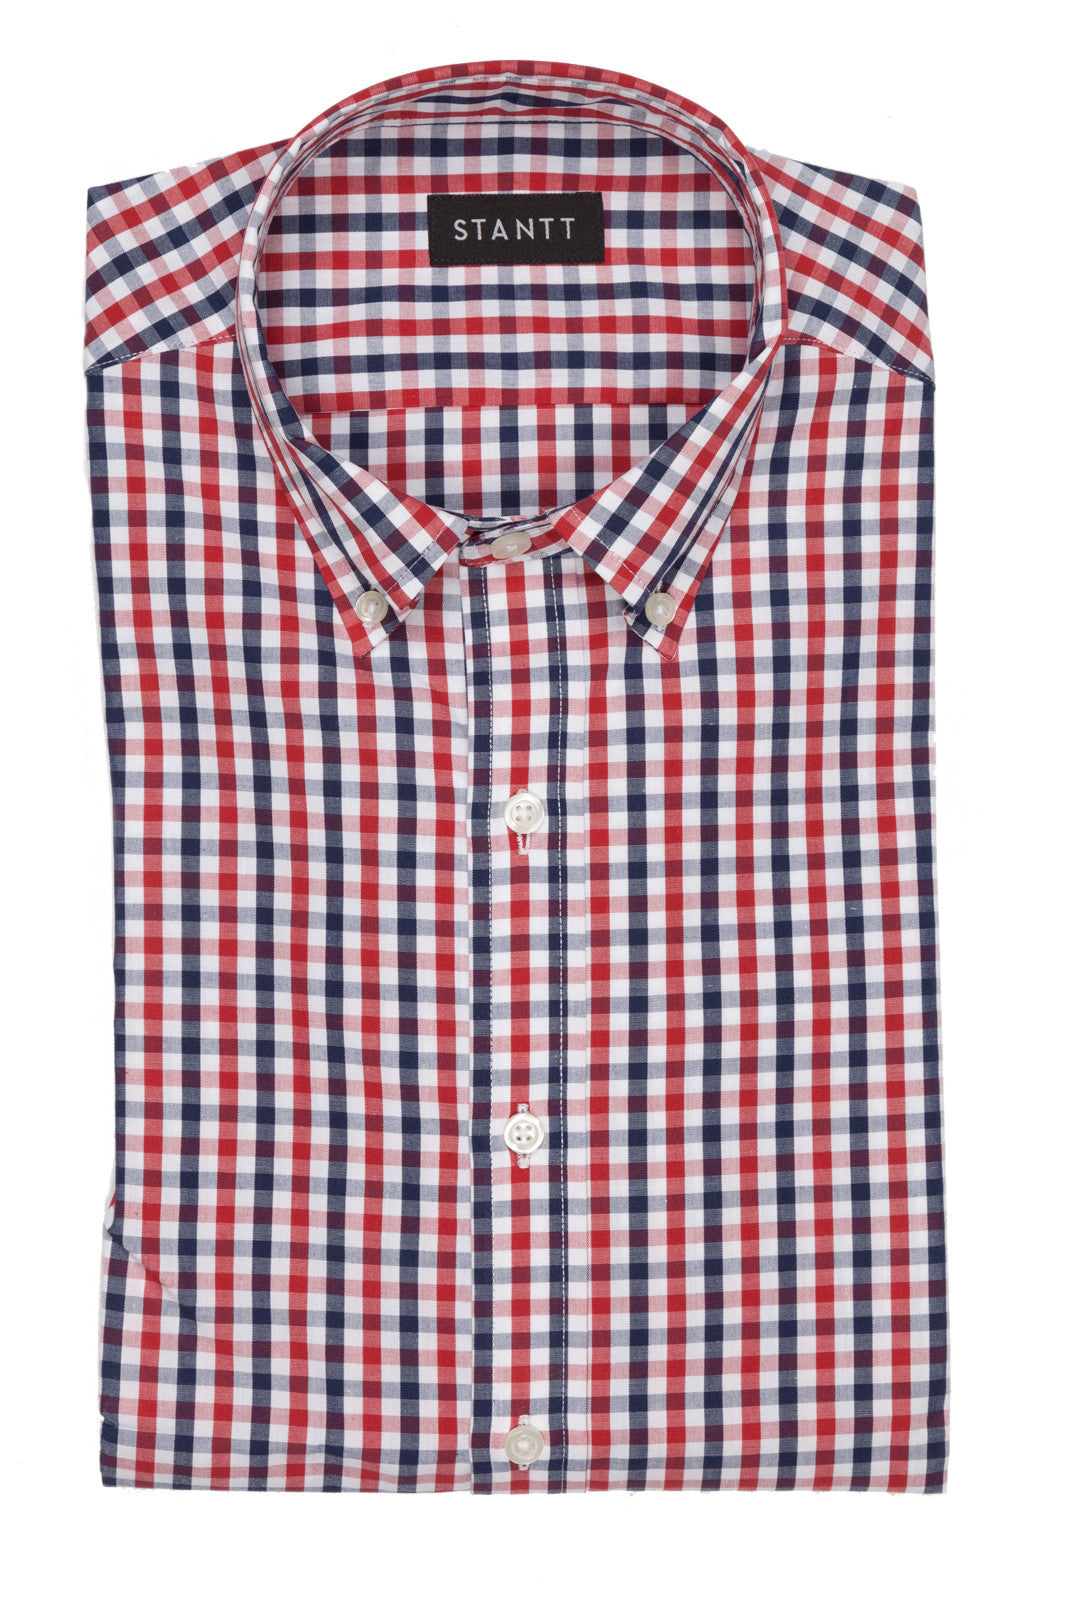 Cardinal Red and Navy Gingham: Modified-Spread Collar, French Cuff